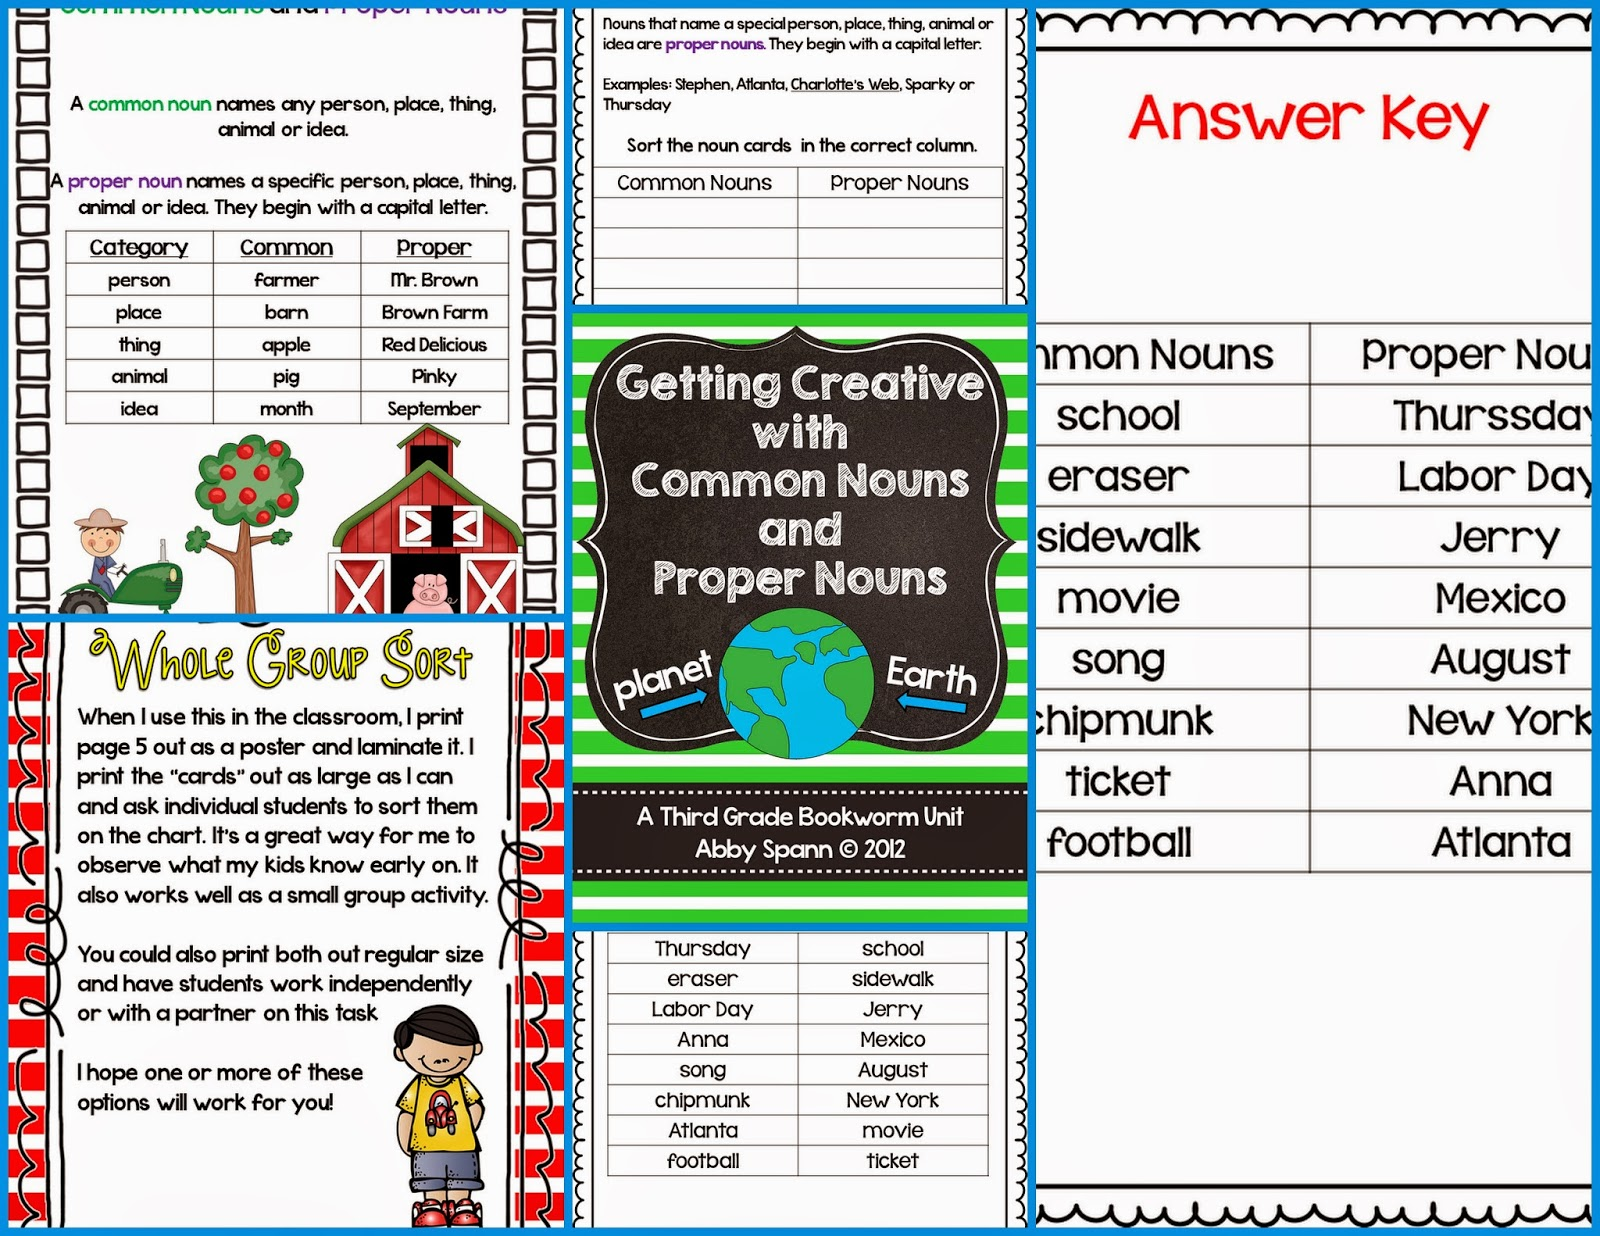 http://www.teacherspayteachers.com/Product/Getting-Creative-with-Common-Nouns-and-Proper-Nouns-320293